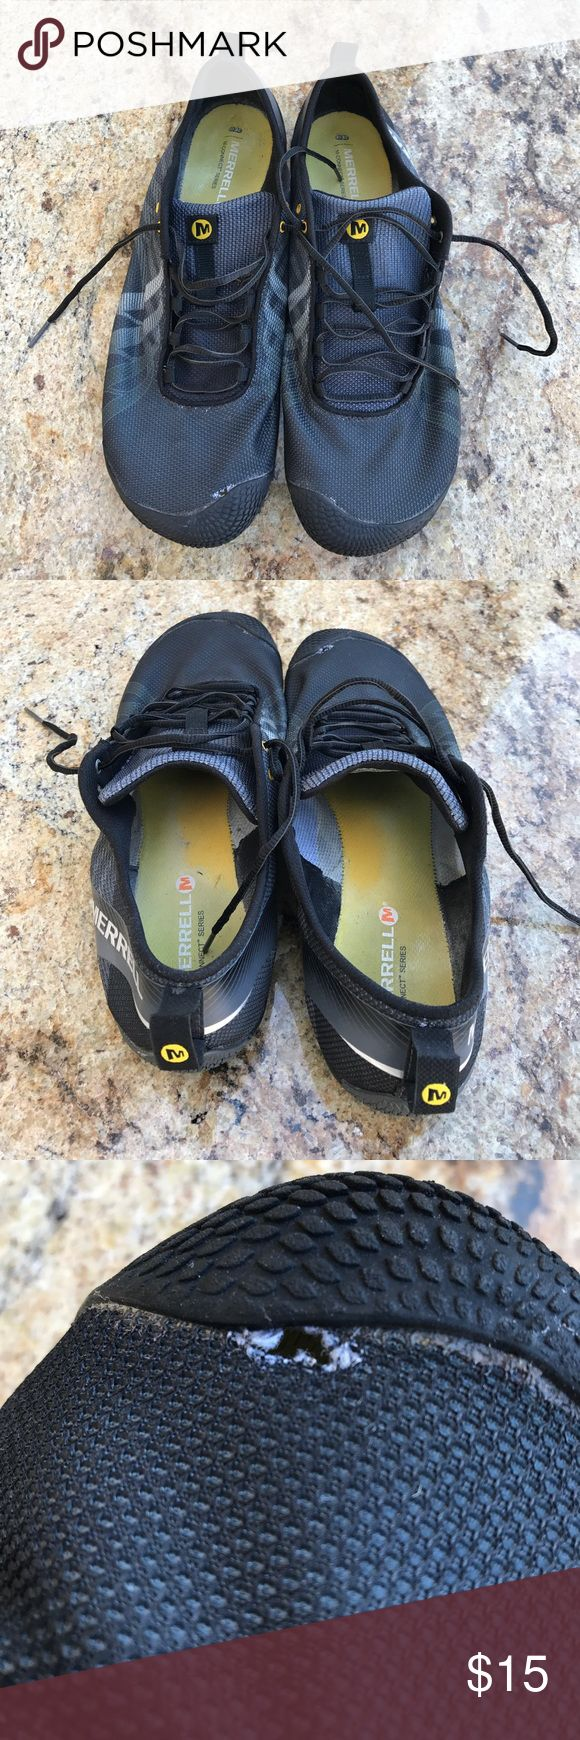 Merrell Performance Footwear Good Shoes To Get Wet And Dry Fast While Still On Your Feet, As Shown In Picture 3 There's A Little Hole Near The Big Toe But Other Then That They Are In Good Shape,Very Light And Durable,So Make Me An Offer Please!!!!! Merrell Shoes Athletic Shoes